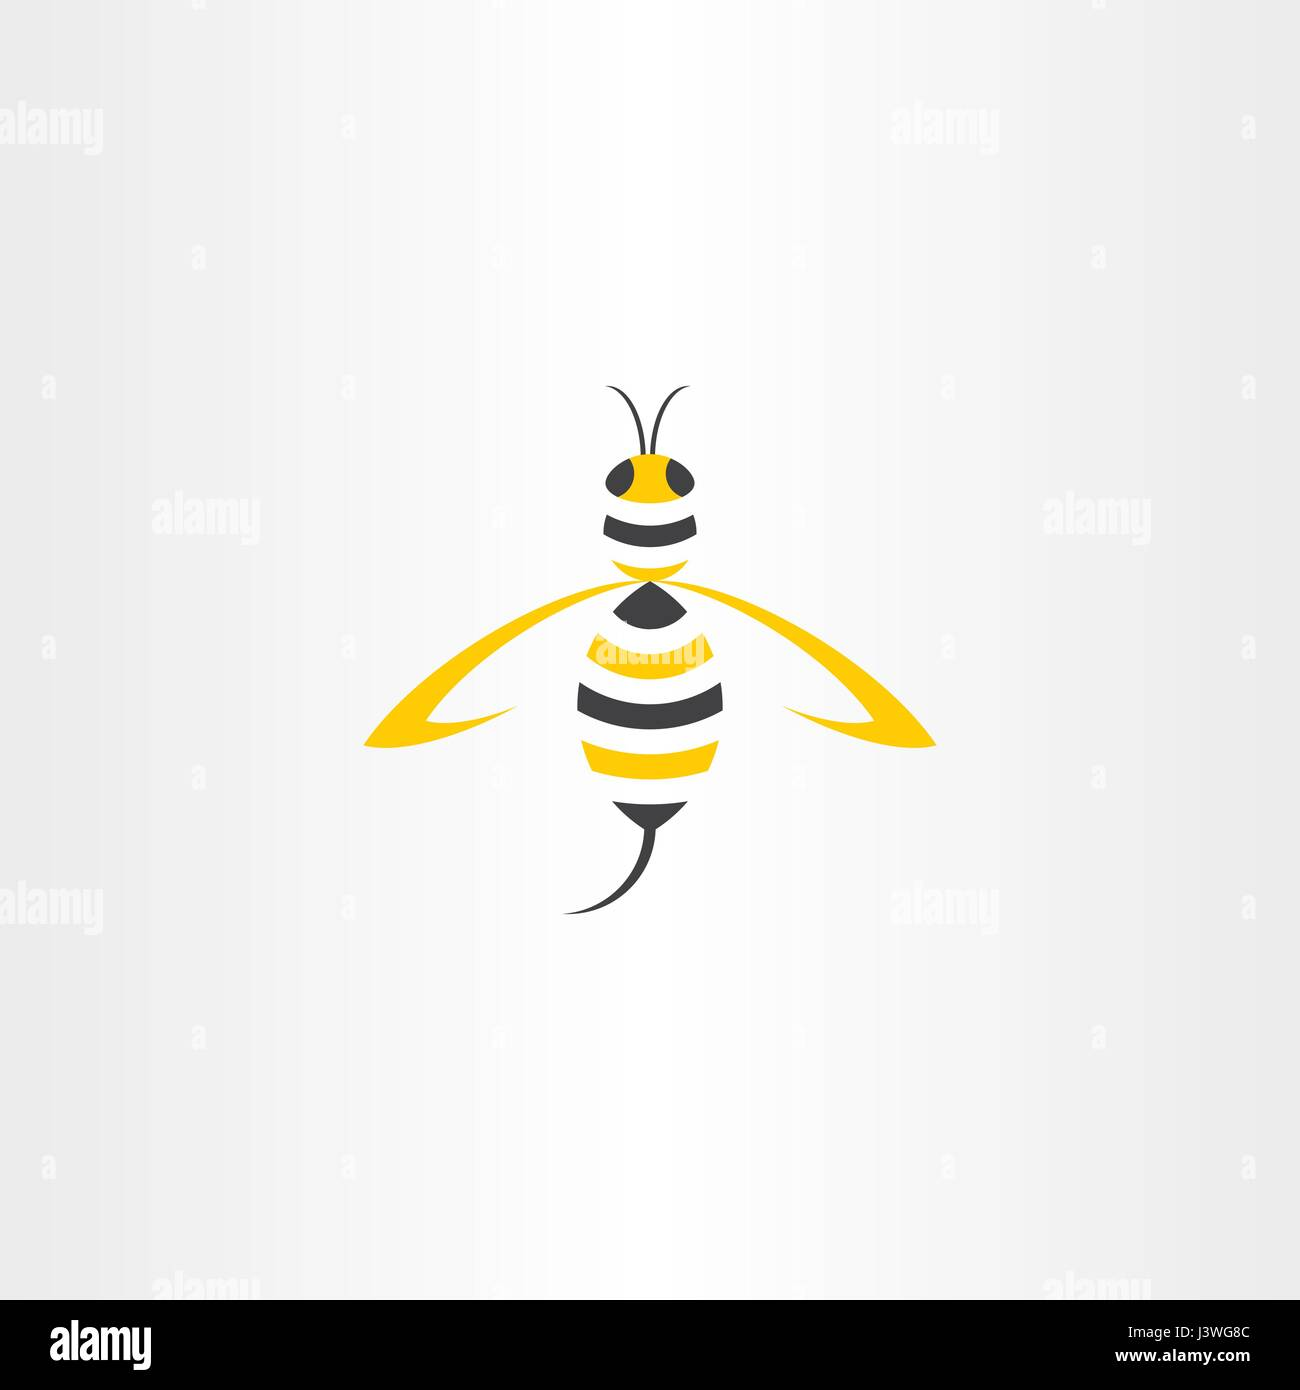 wasp stylised vector icon logo design - Stock Vector